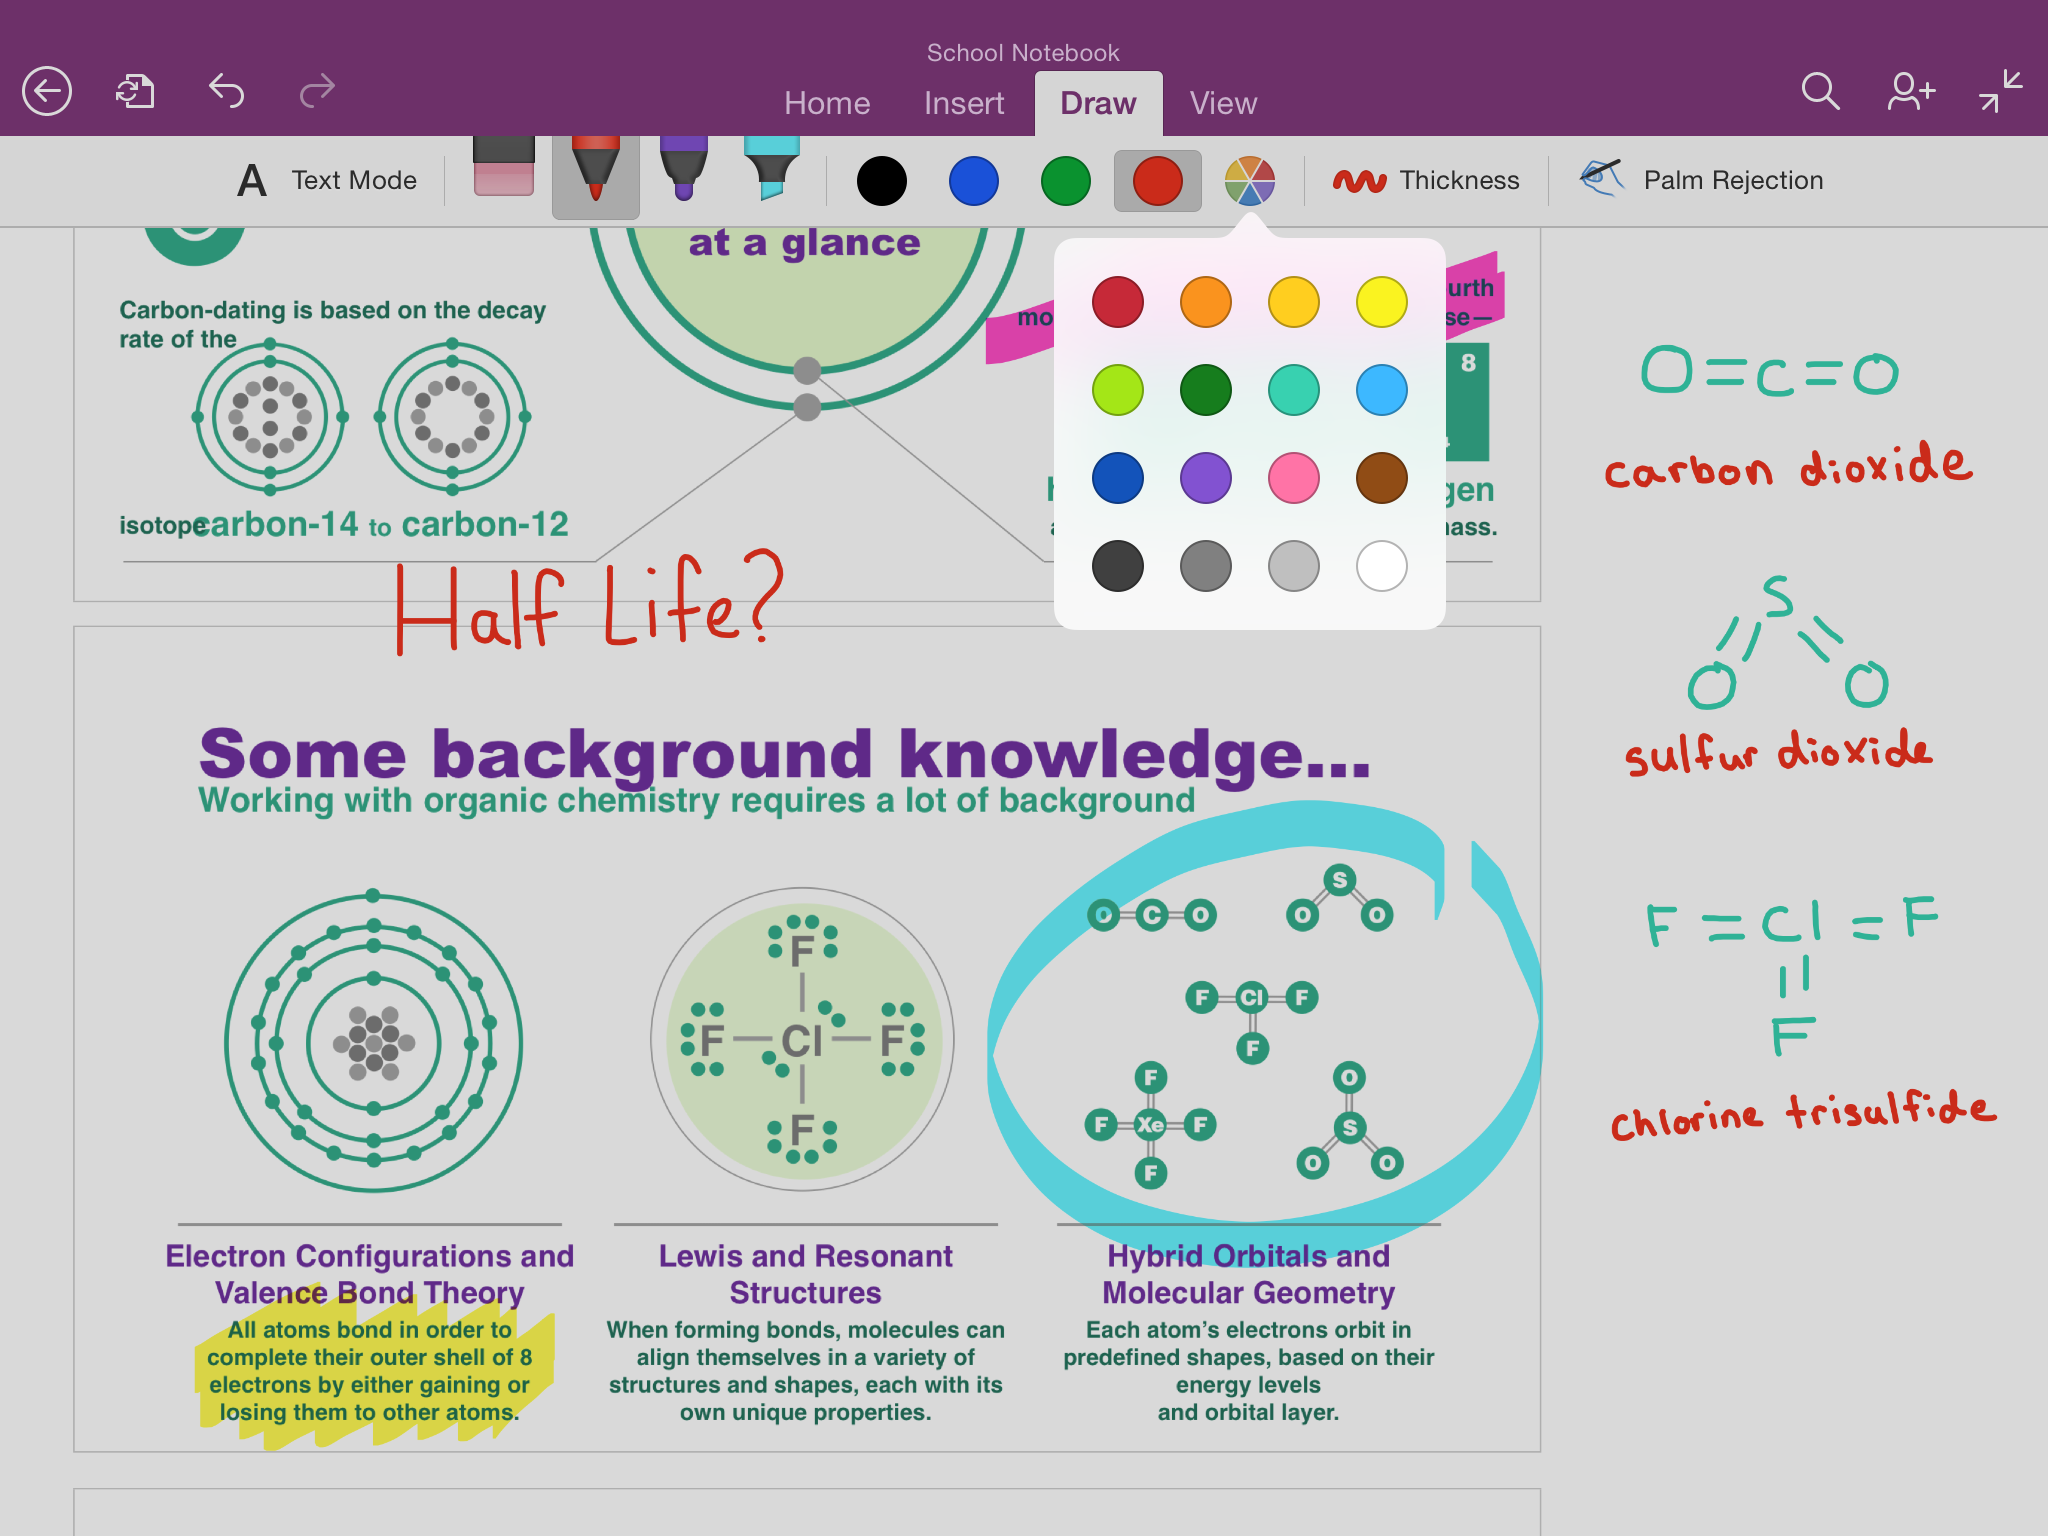 Handwriting in OneNote for iPad and OCR everywhere - Office Blogs | One  note microsoft, Classroom tech, Education tech